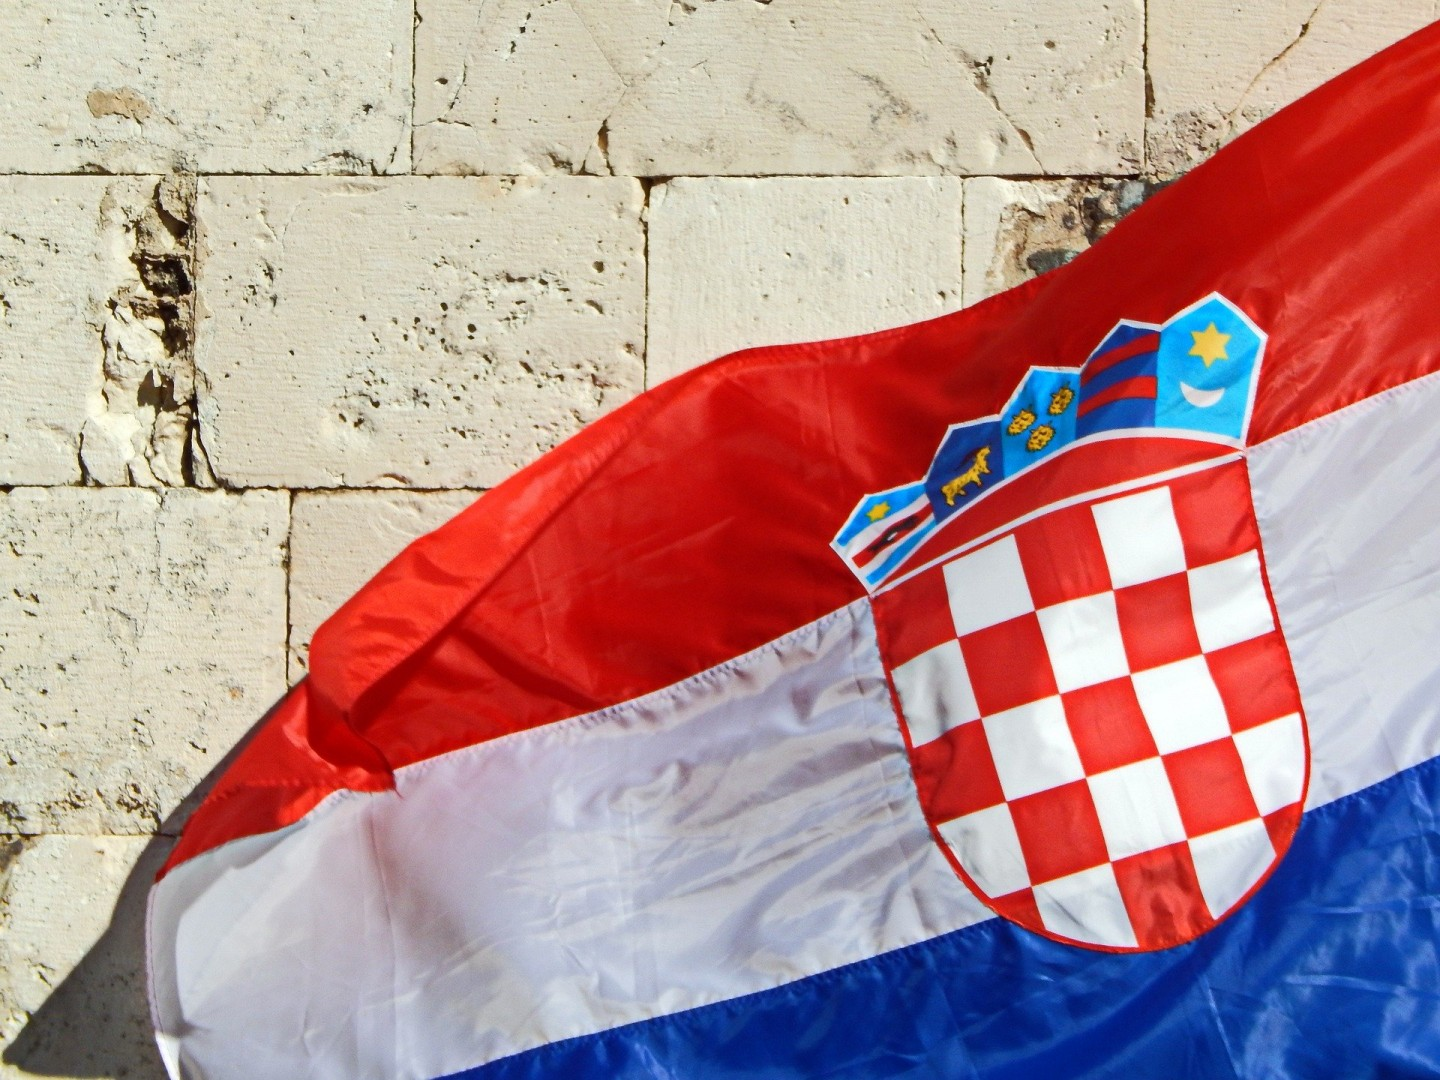 croatian-flag-3556690_1920